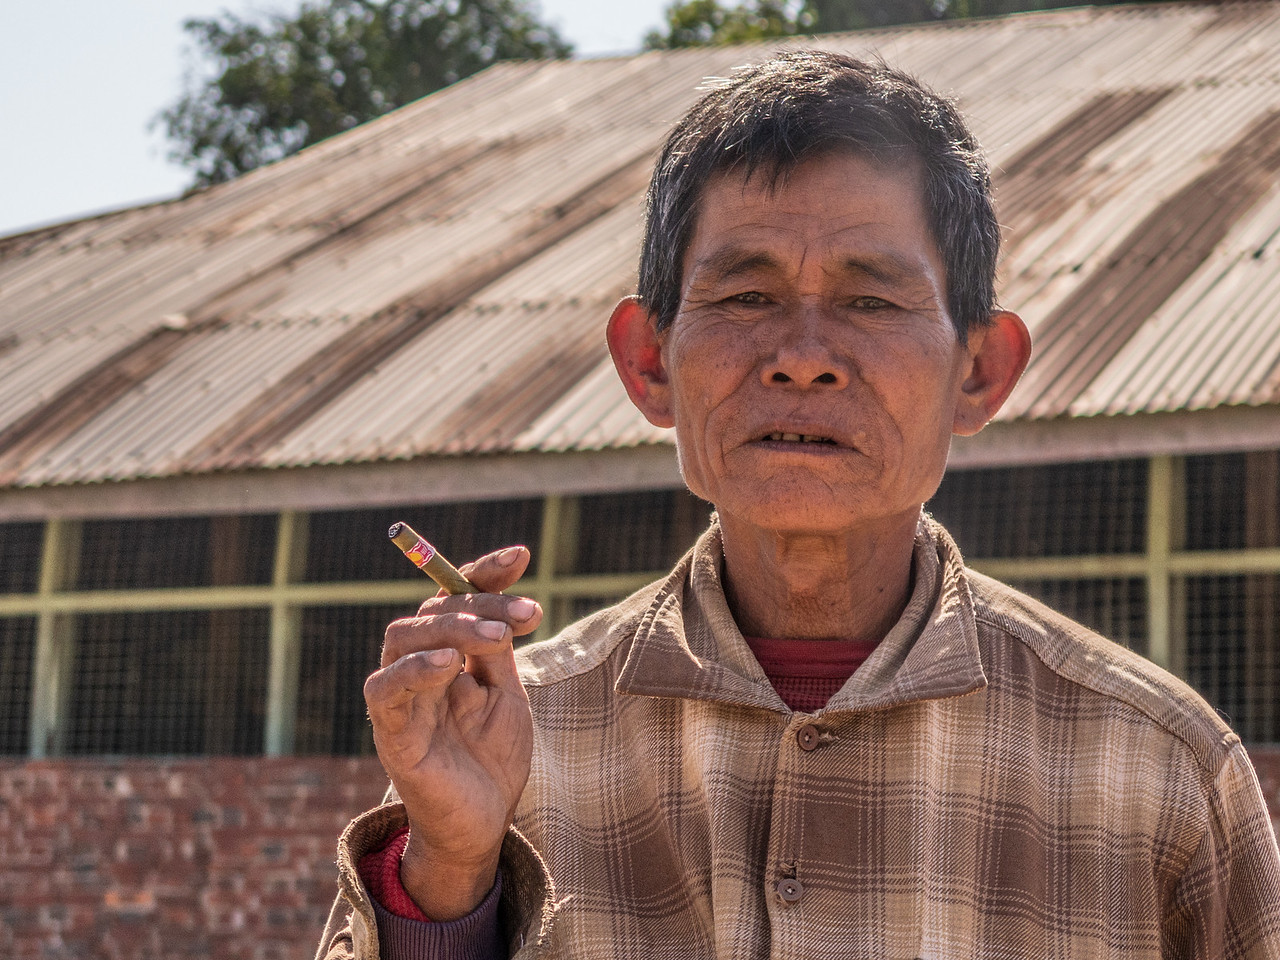 Burmese Man Poses with Cigar in Myanmar